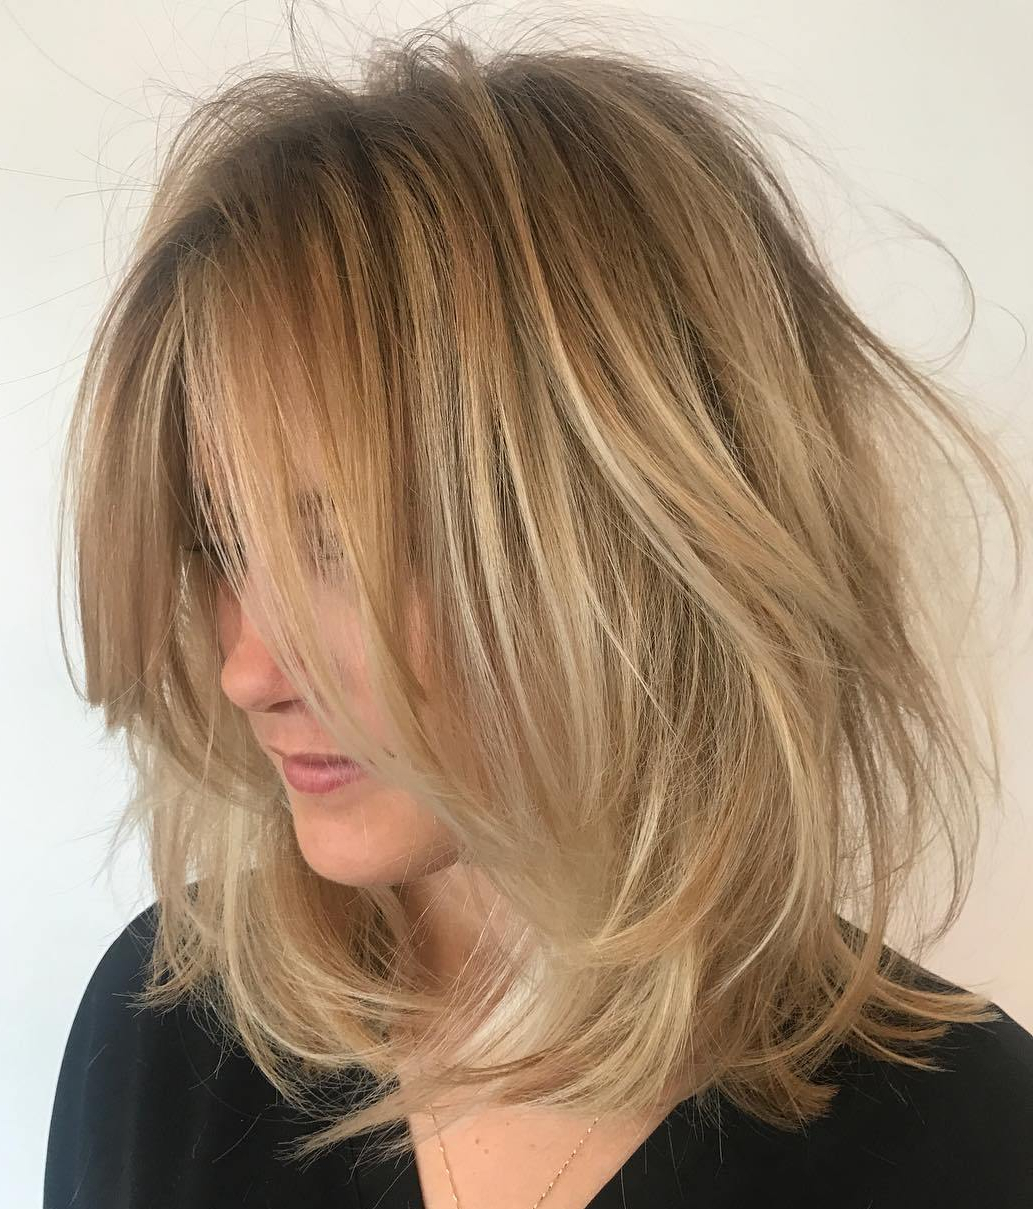 70 Devastatingly Cool Haircuts For Thin Hair Within Preferred Straight Layered Hairstyles With Twisted Top (View 4 of 20)